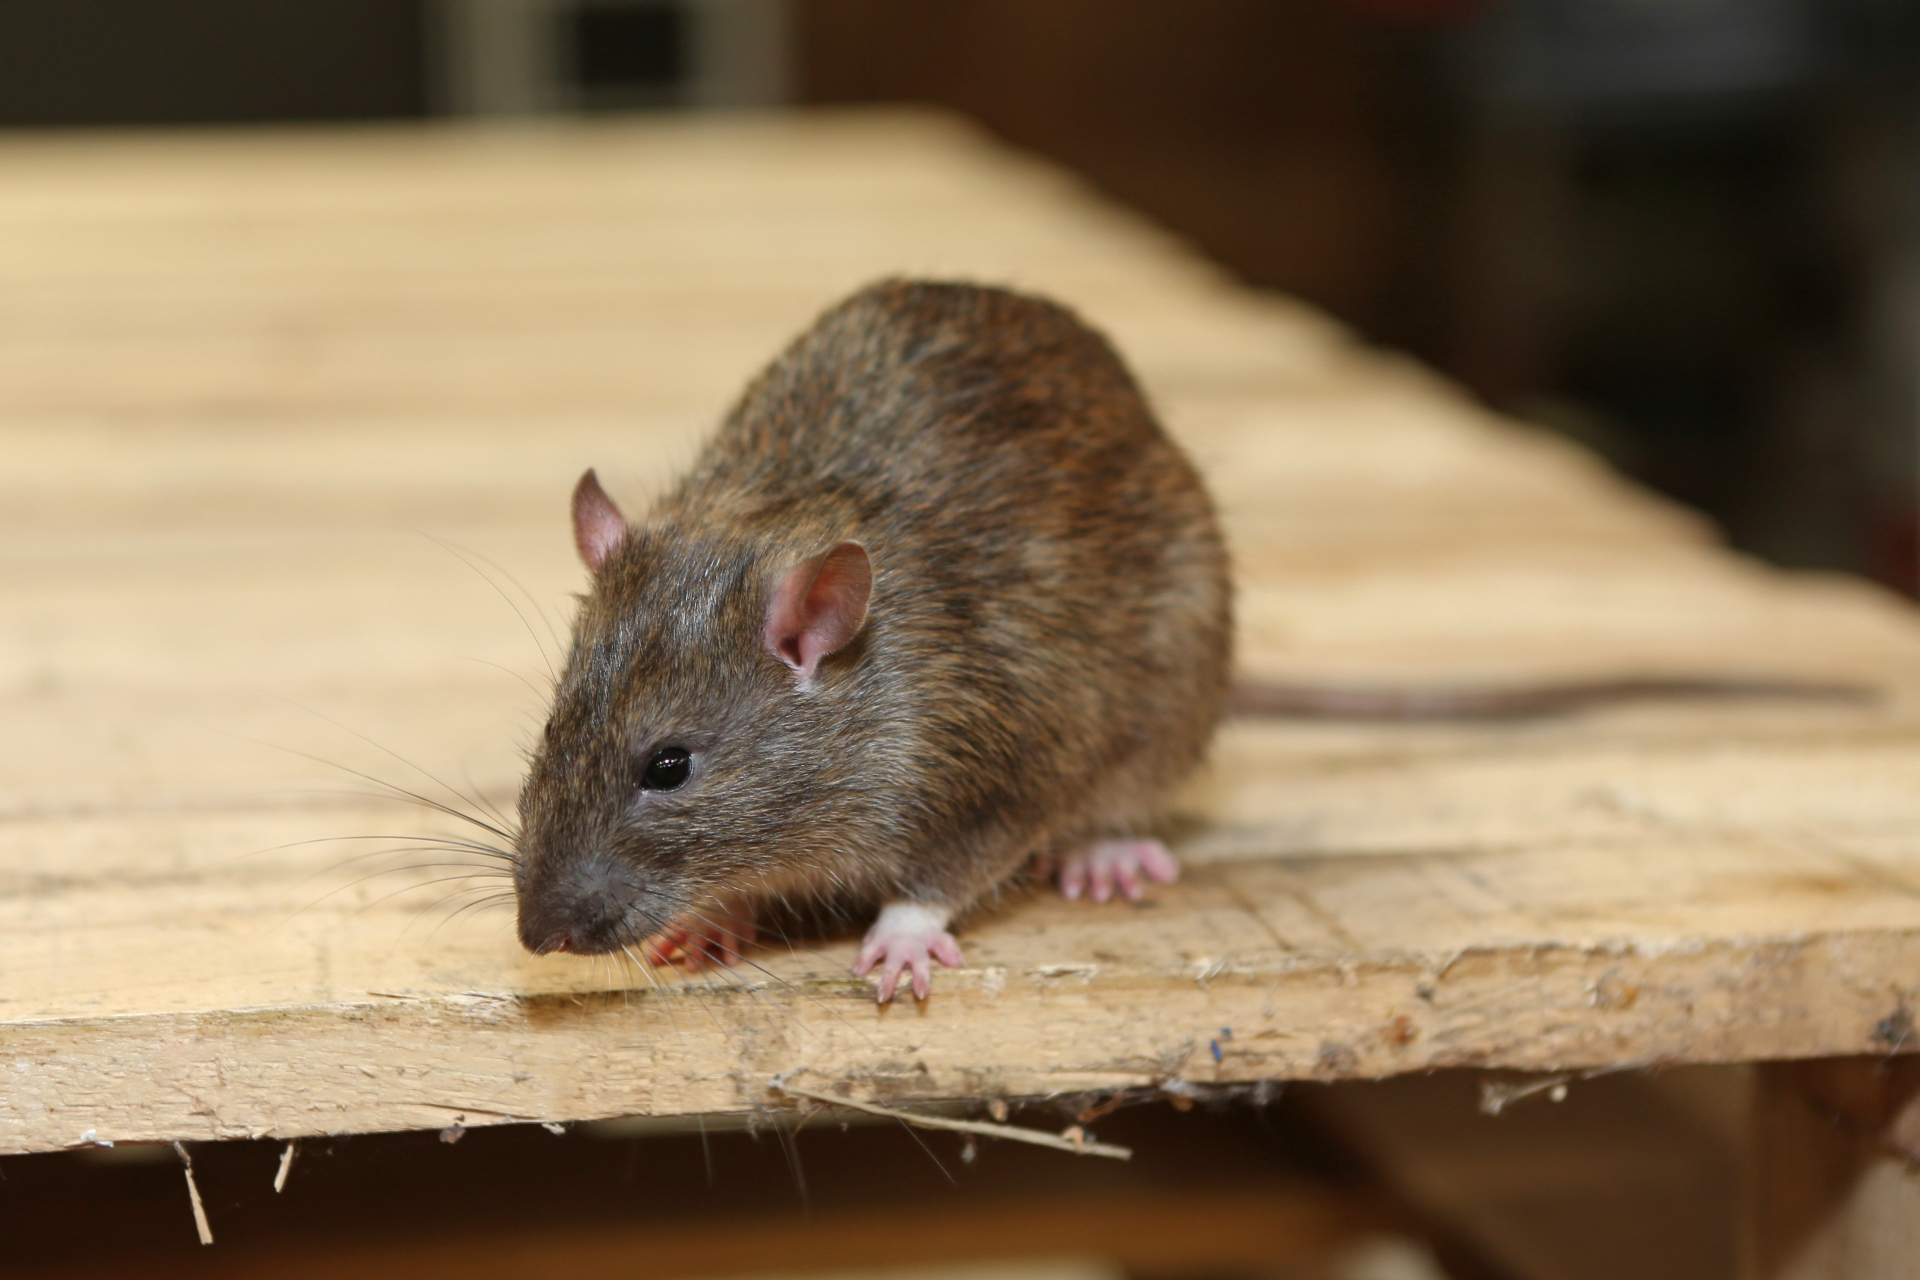 Rat Control, Pest Control in Winchmore Hill, N21. Call Now 020 8166 9746